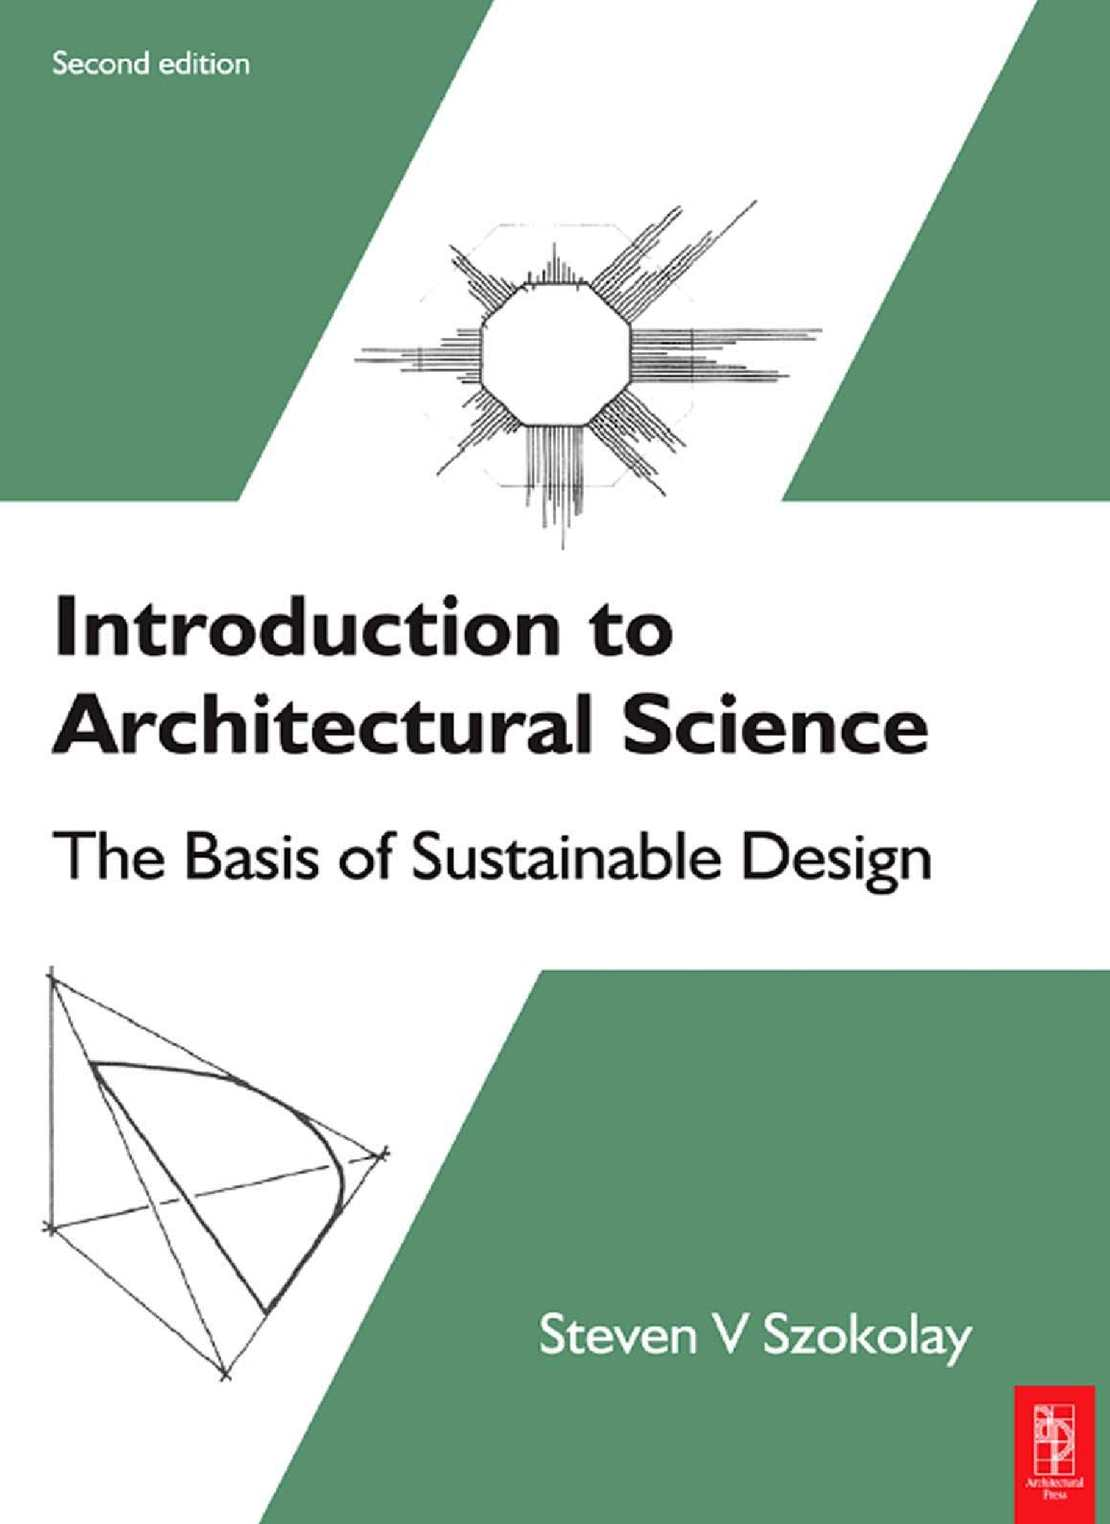 Calamo Introduction To Architectural Science The Basis Of Trend Wiring Diagram Vga Connector Ceiling Rose Sustainable Design